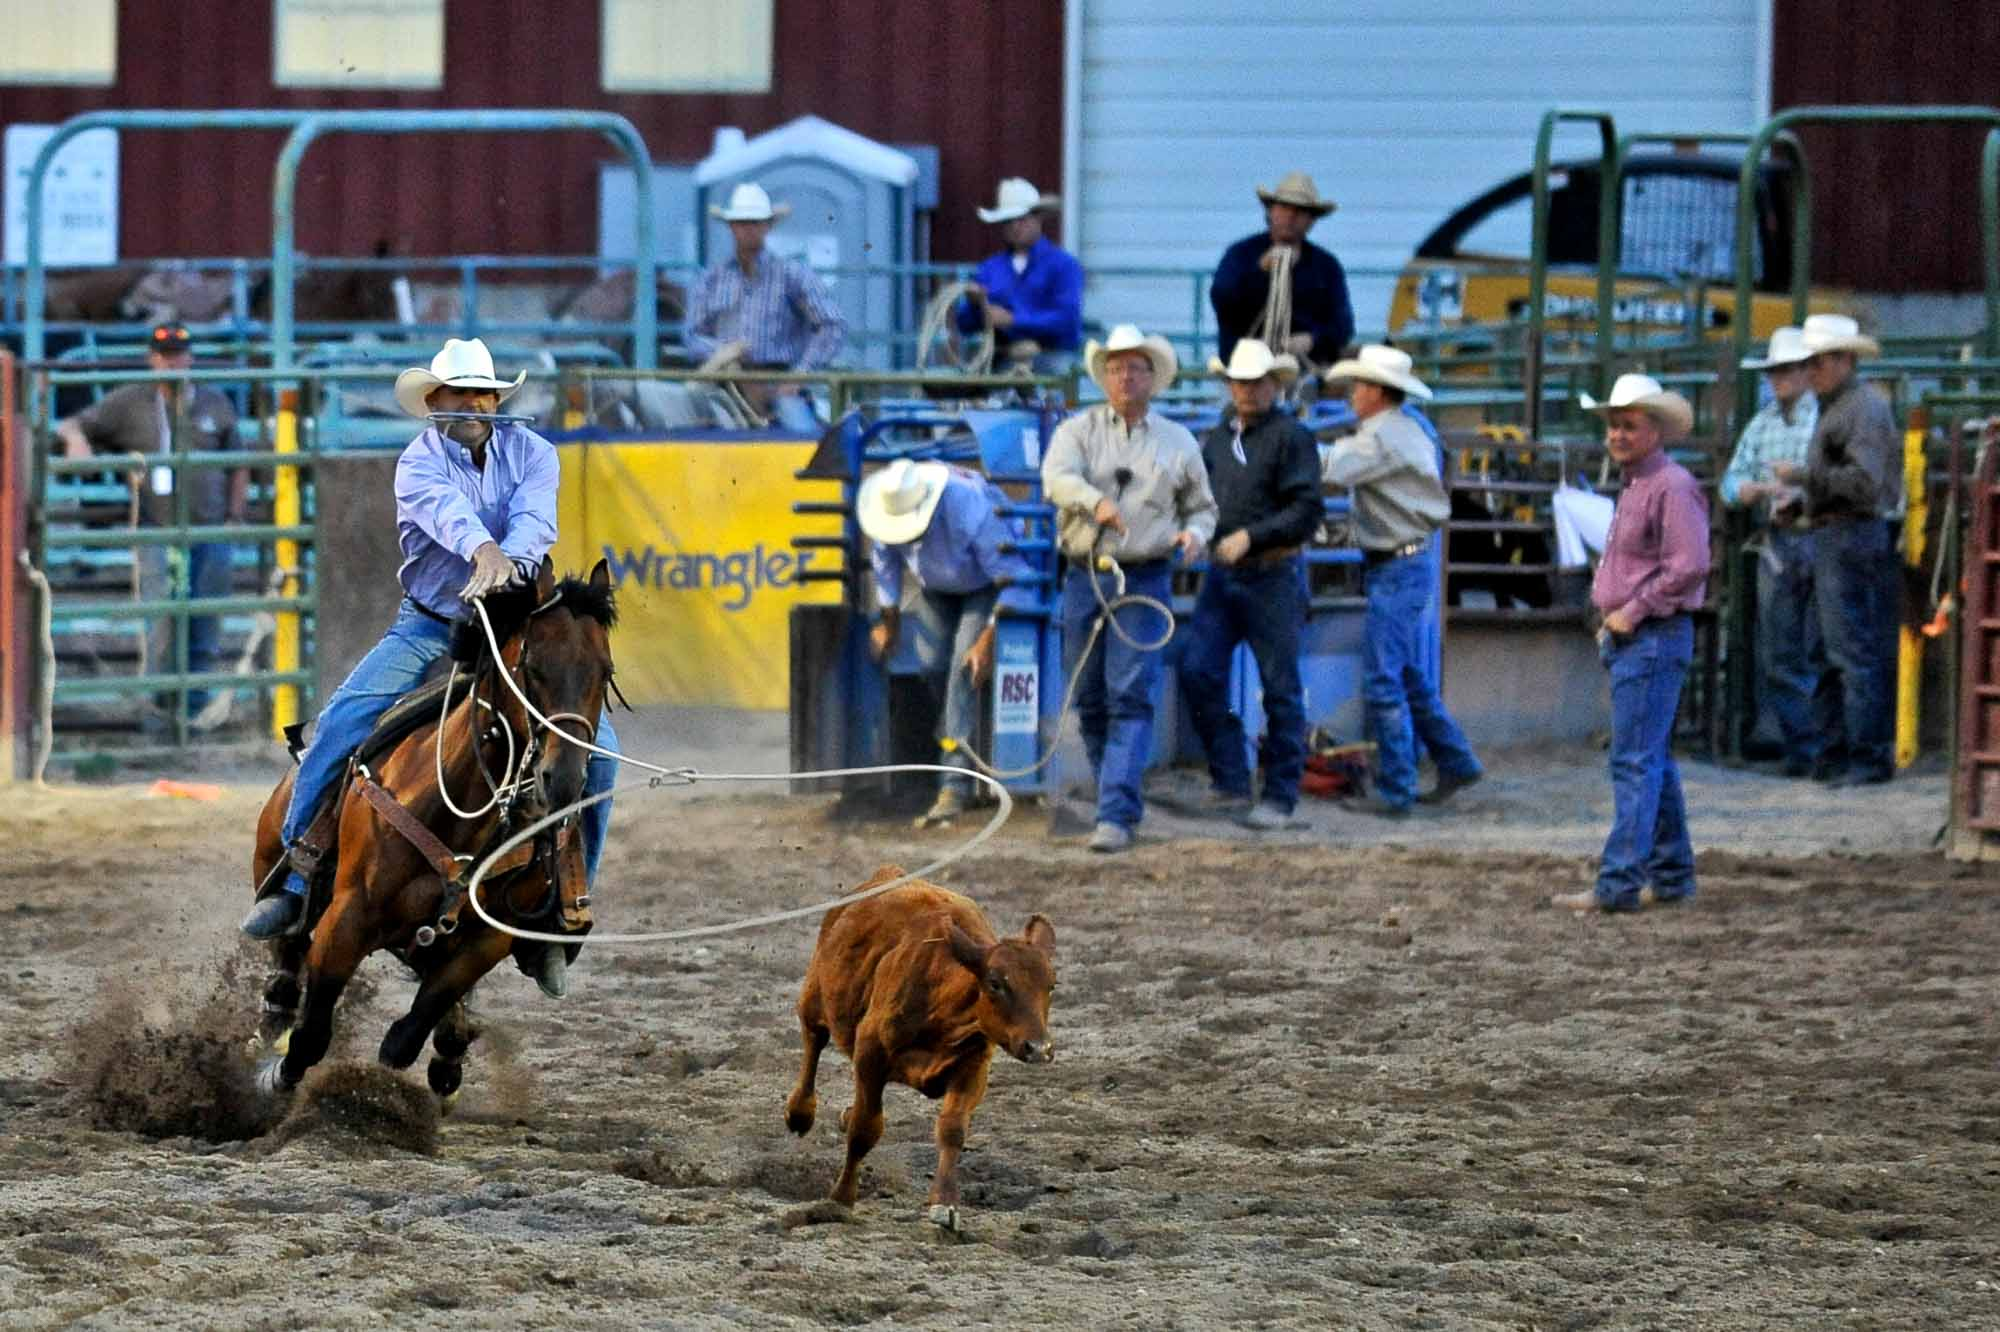 Willie Roberts lassos a calf and pins it to the ground in 12.3 seconds during the 75th annual Eagle County Fair and Rodeo in Eagle, Colo. on Thursday, July 24, 2014.